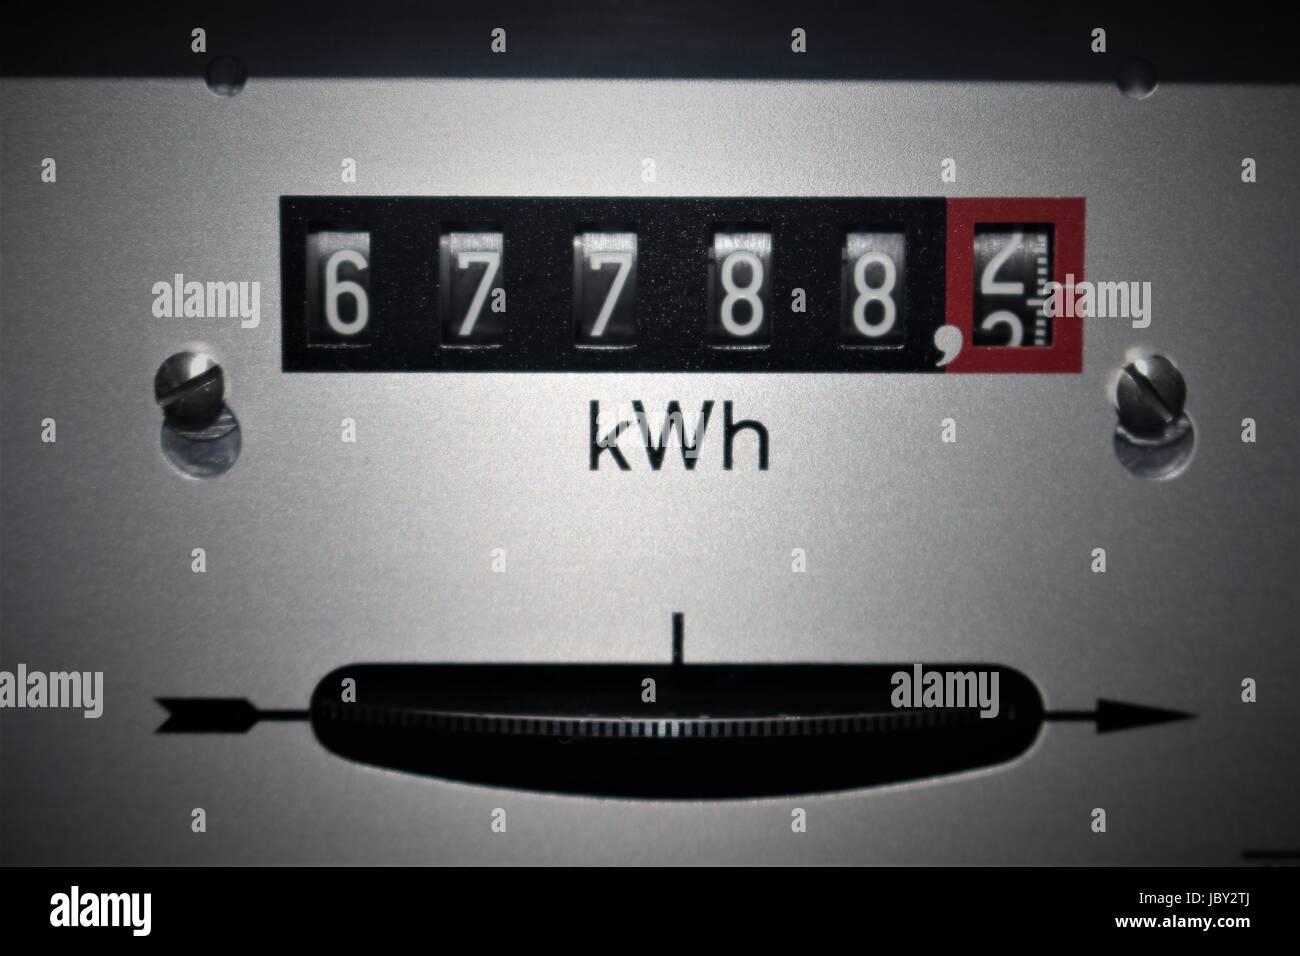 An Image of a electricity counter - Stock Image